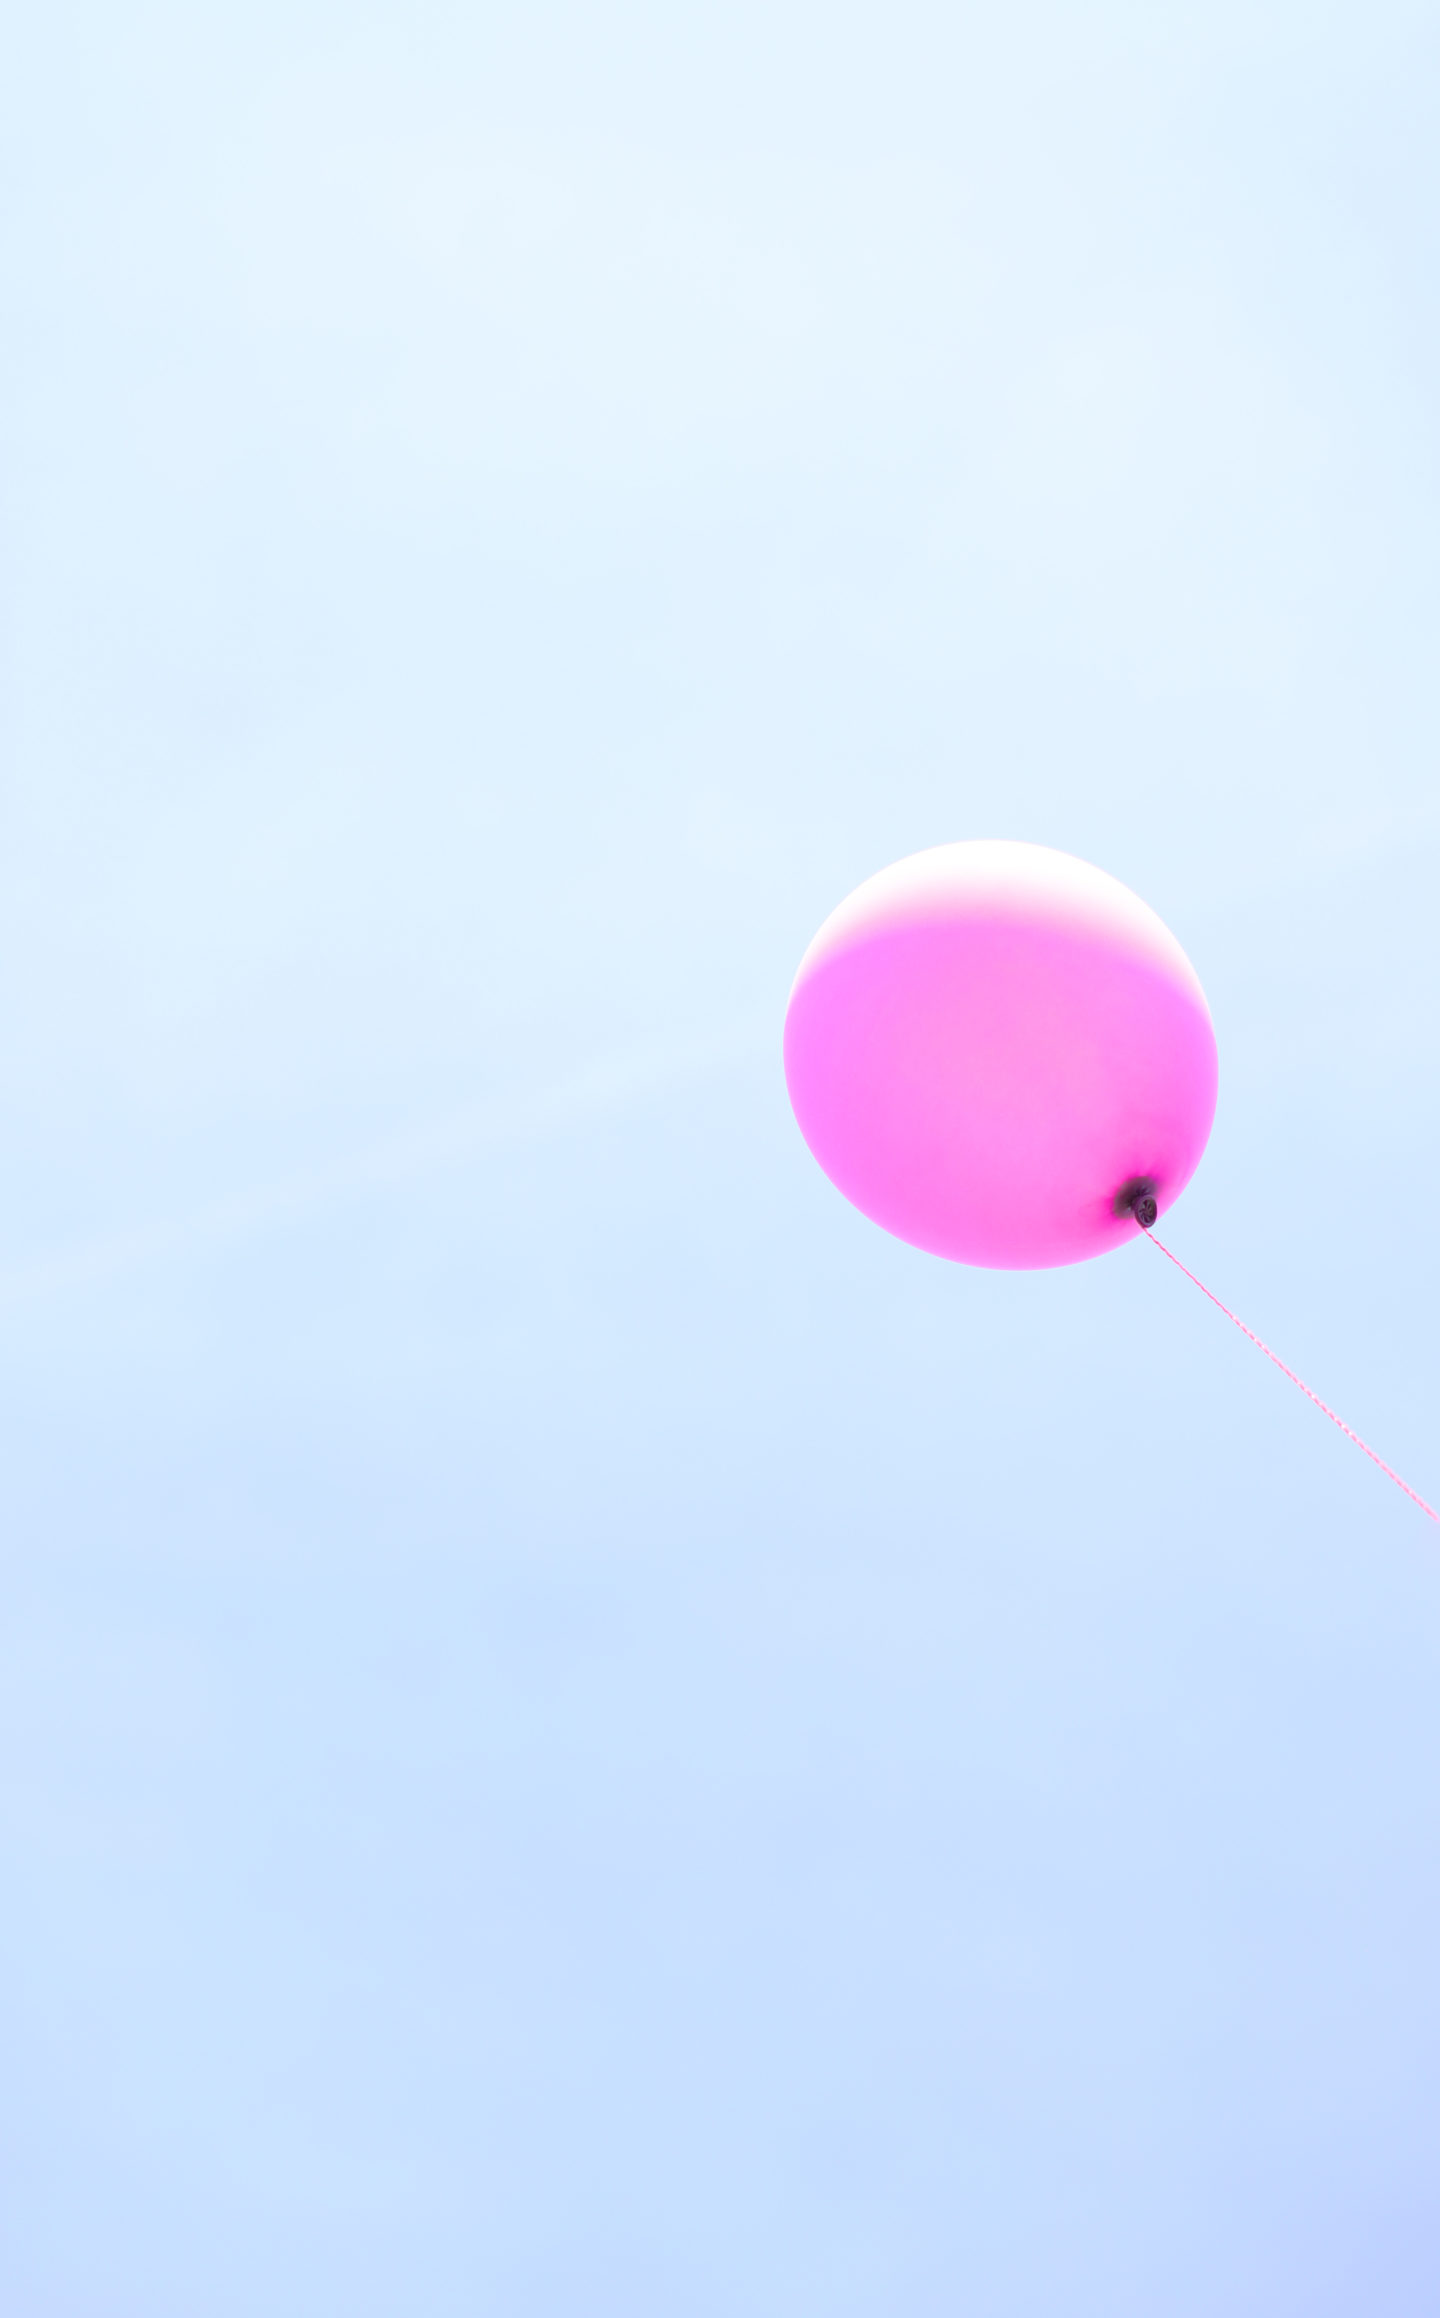 a purple ballon in a blue sky